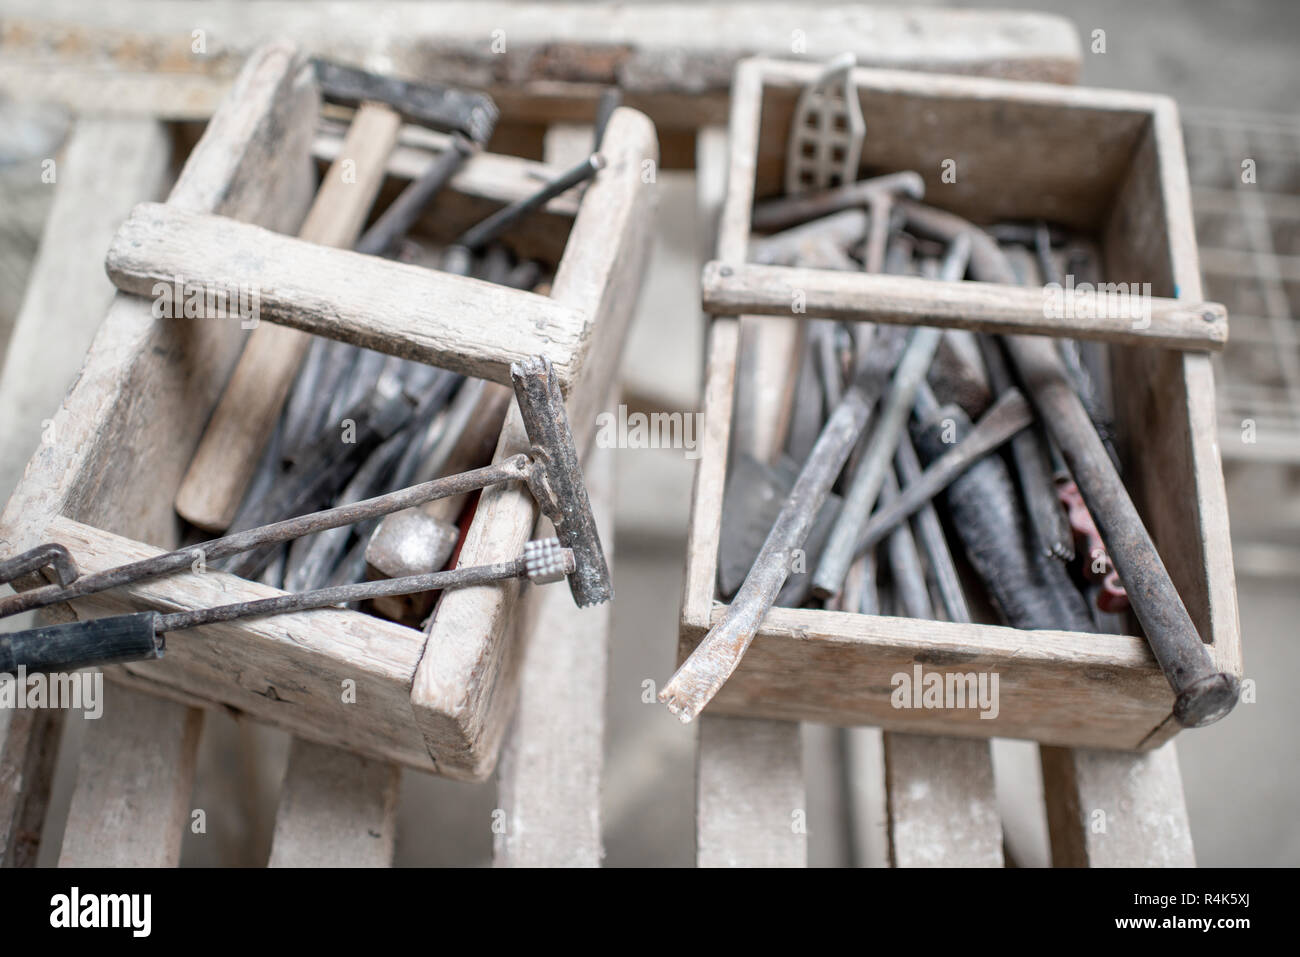 Sculptor's working tools in the wooden boxes - Stock Image